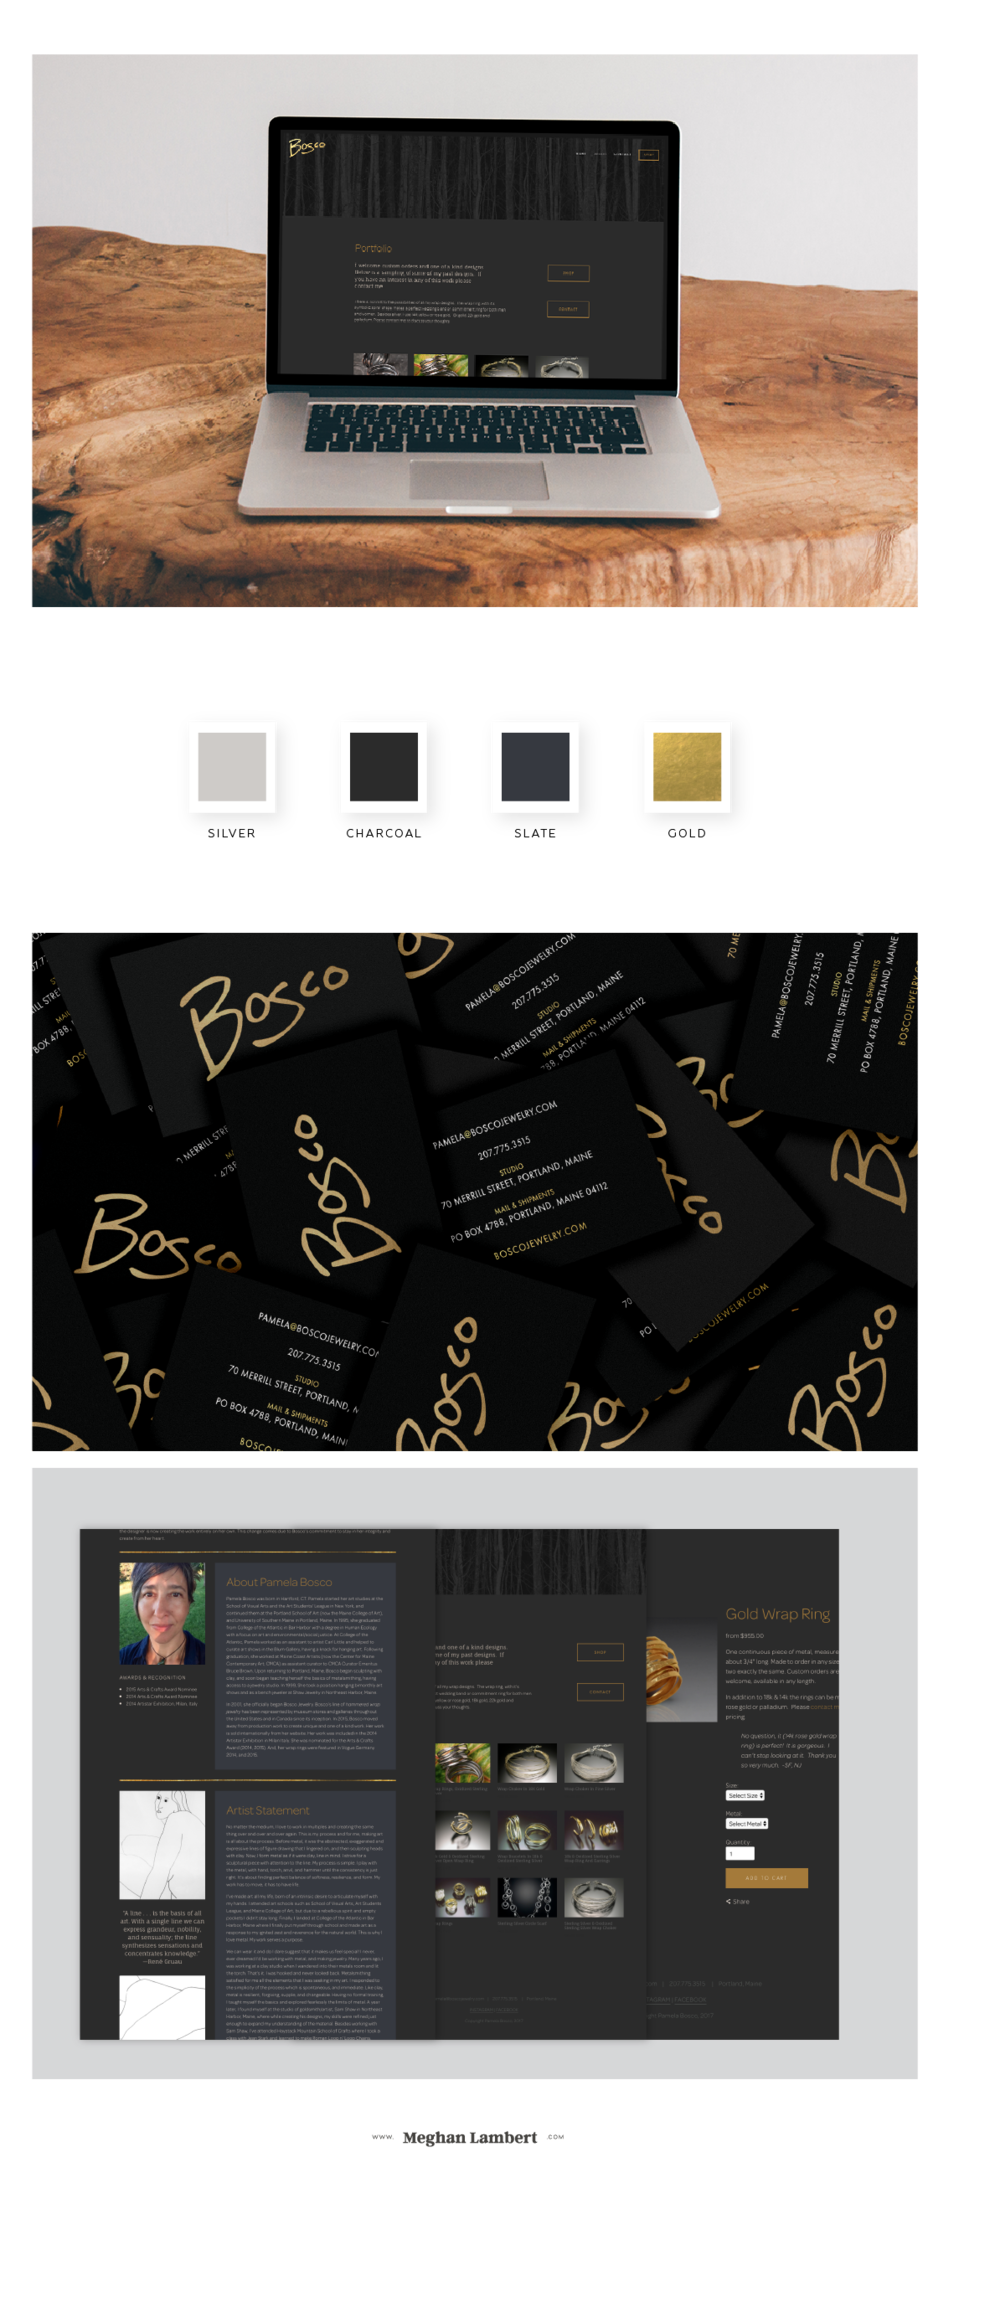 Bosco Jewelry Squarespace Design  by Meghan Lambert